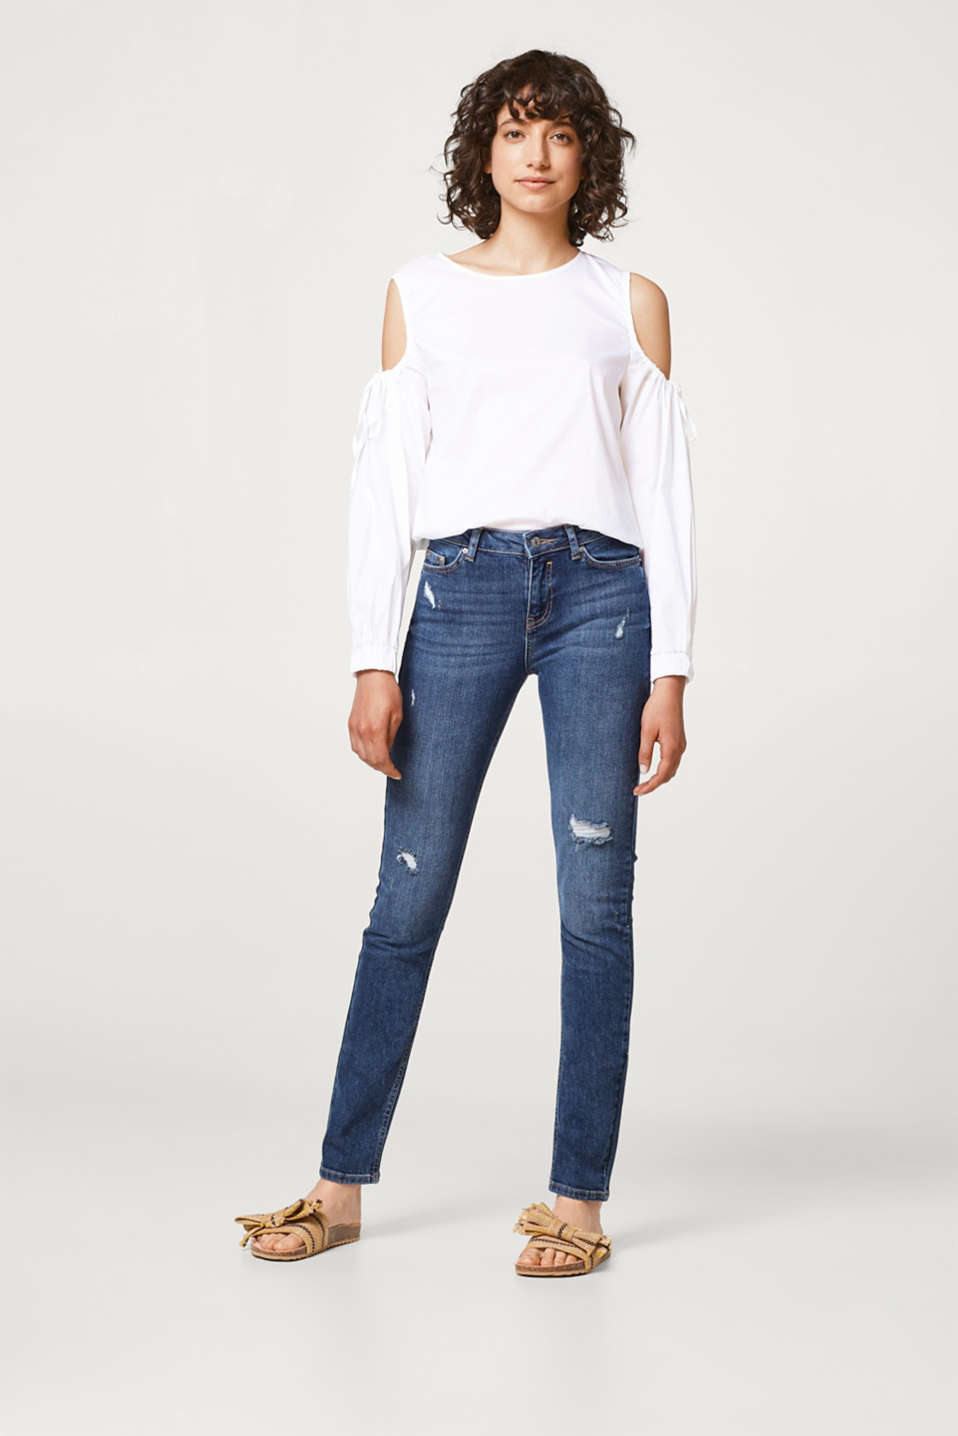 Esprit - Stretchy jeans with heavy vintage effects